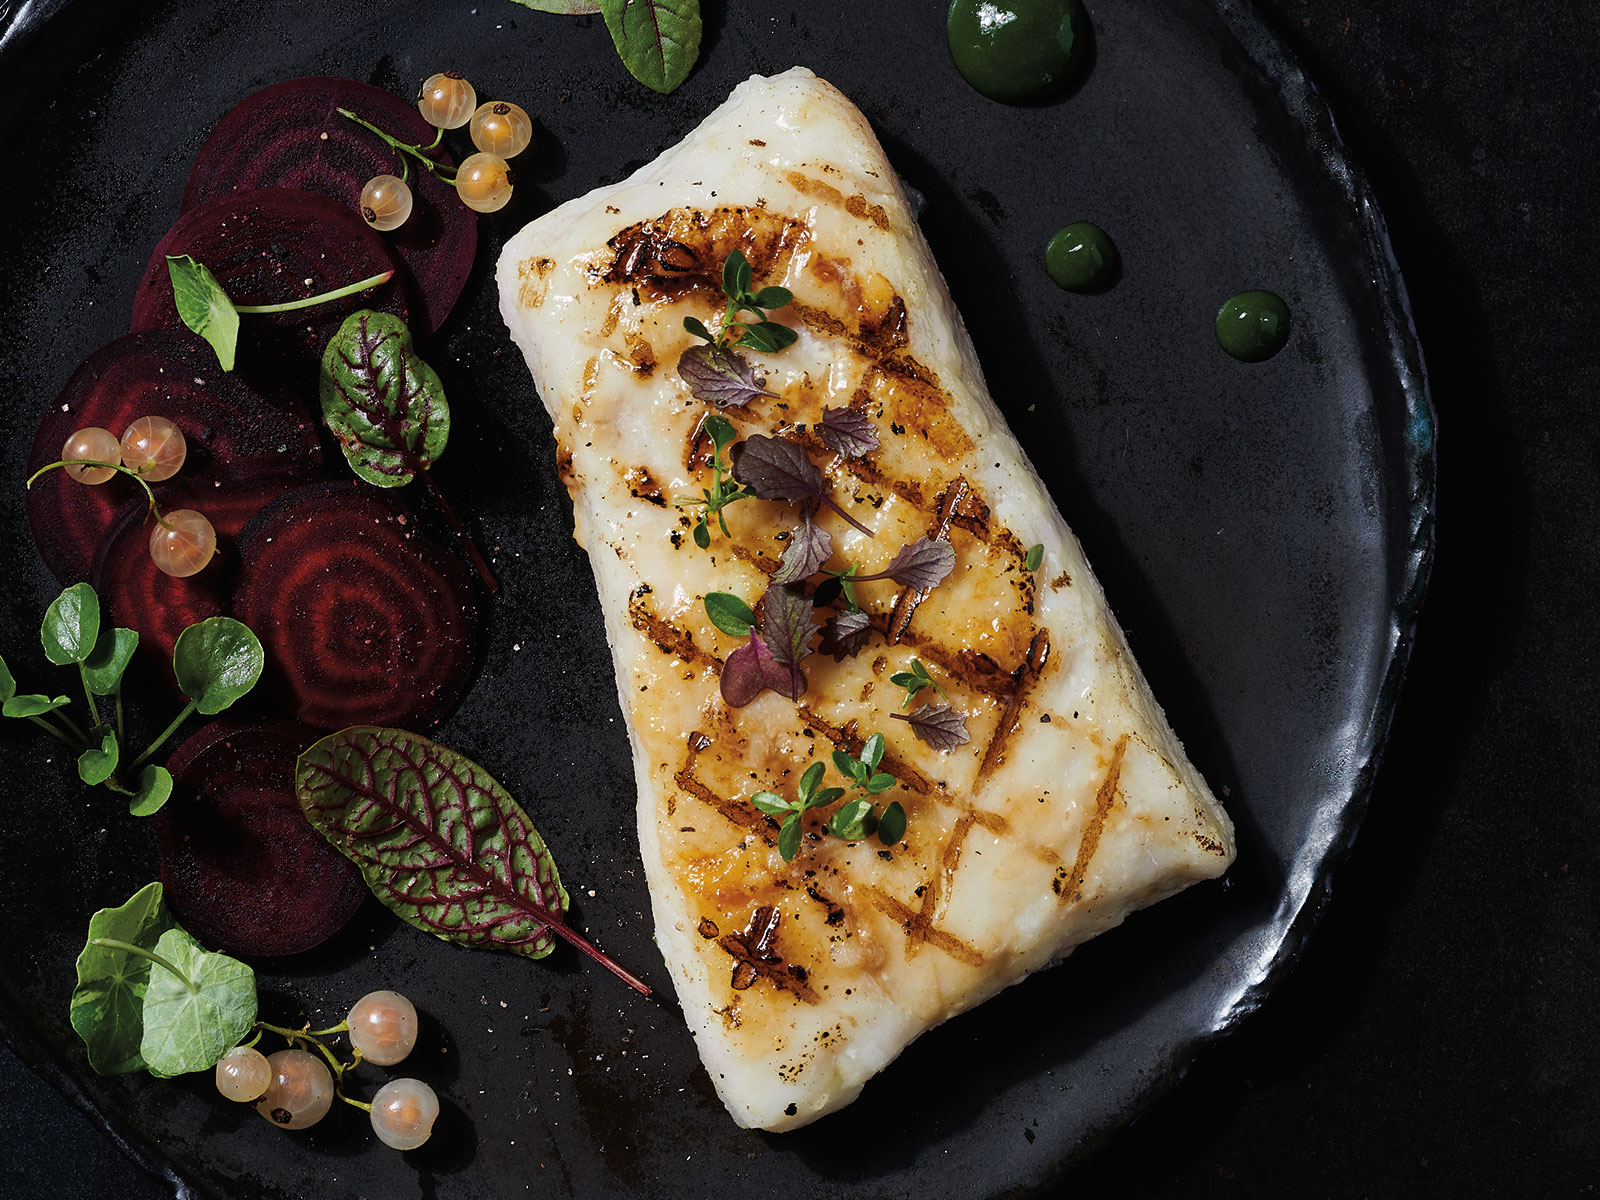 Wild & Simple Entrée Redi™ Wild Alaska Pollock Loin Portion 5.7 oz Deep Skinned, Boneless 426226